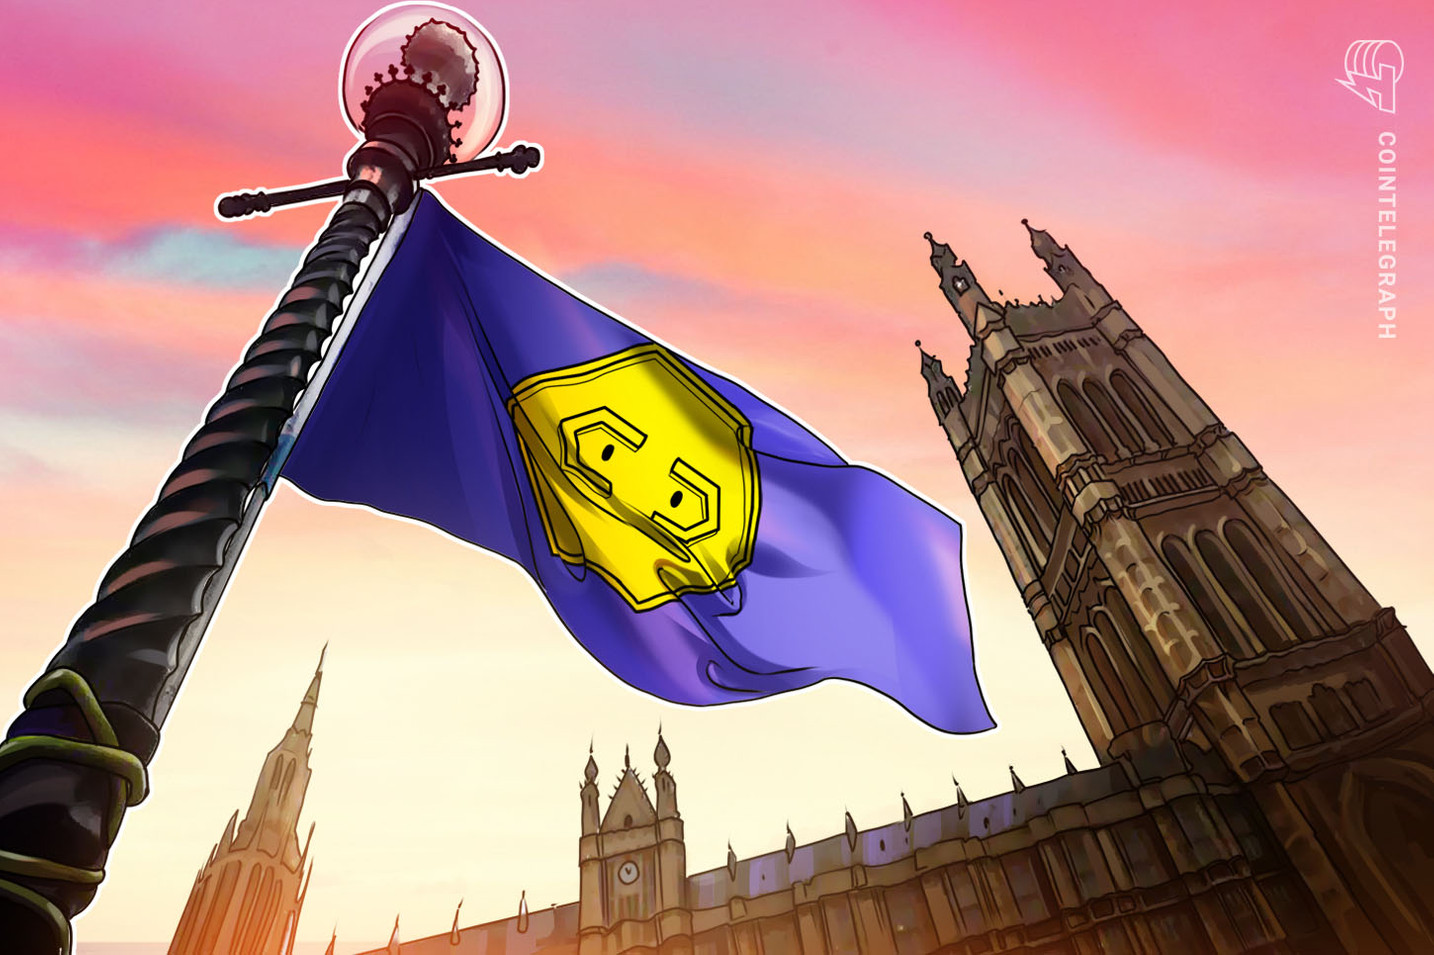 UK Financial Watchdog Reminds Crypto Businesses to Register Ahead of Deadline